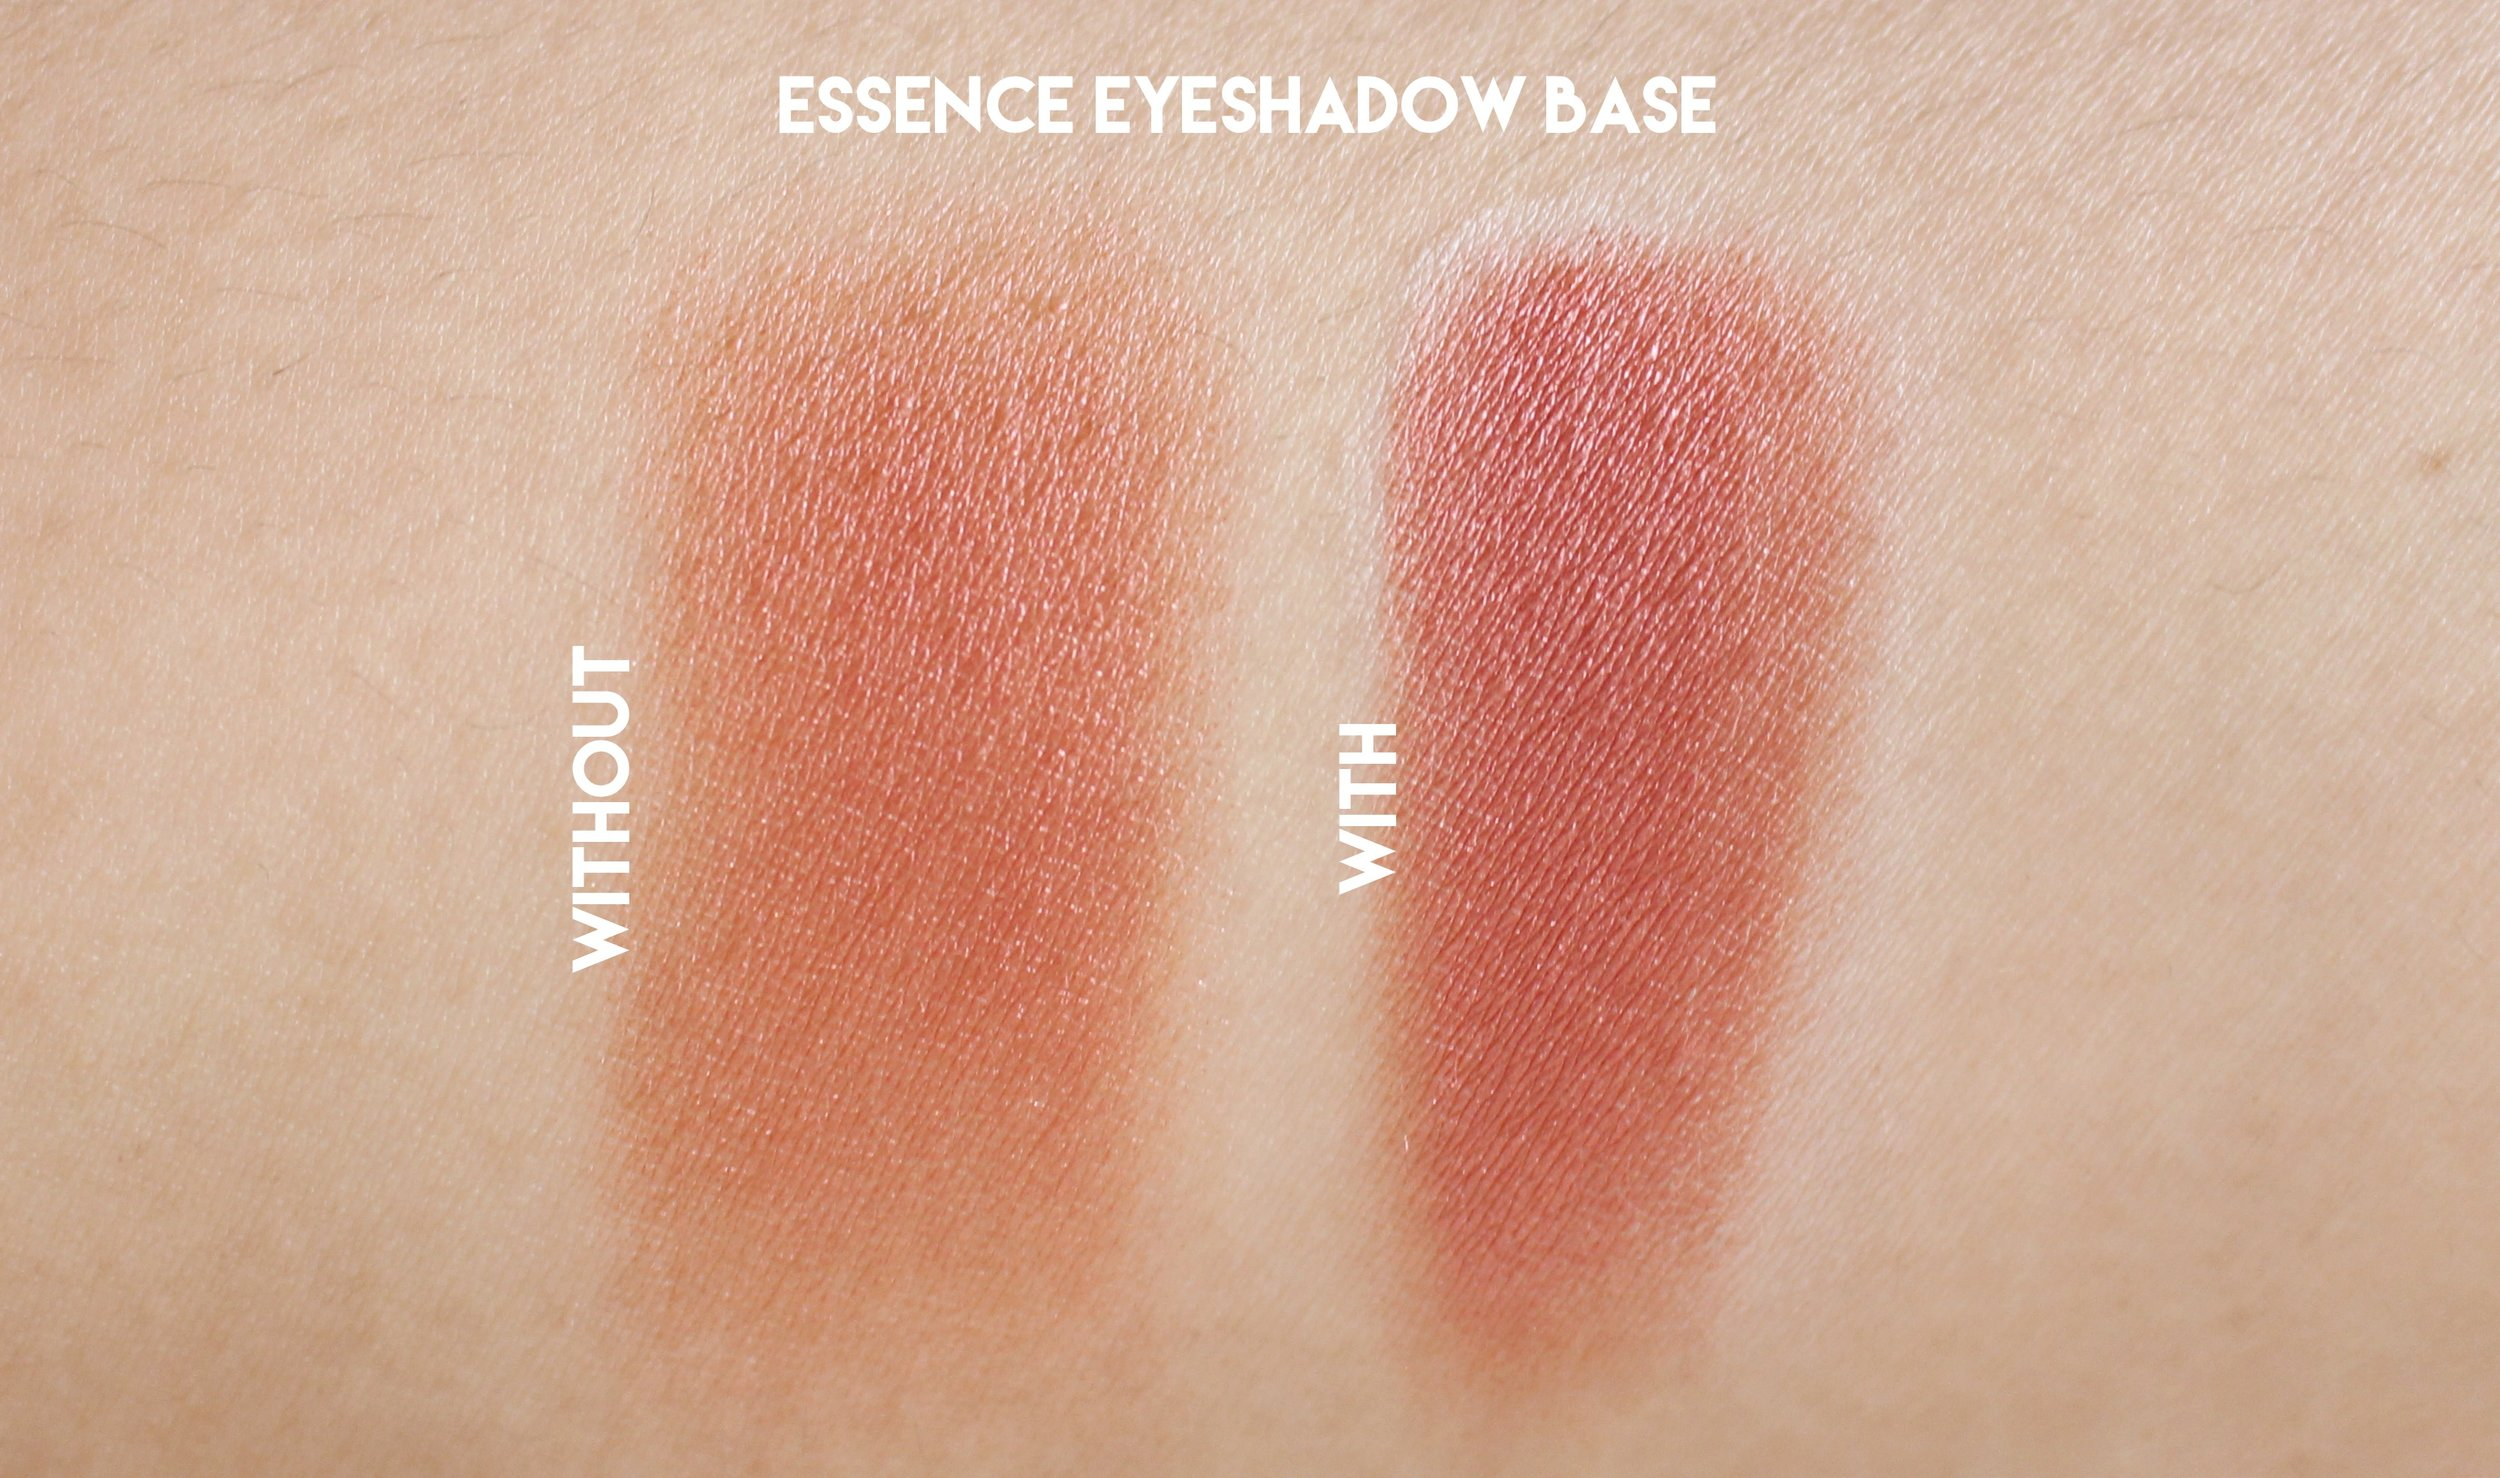 I Love Color Intensifying Eyeshadow Base by essence #4